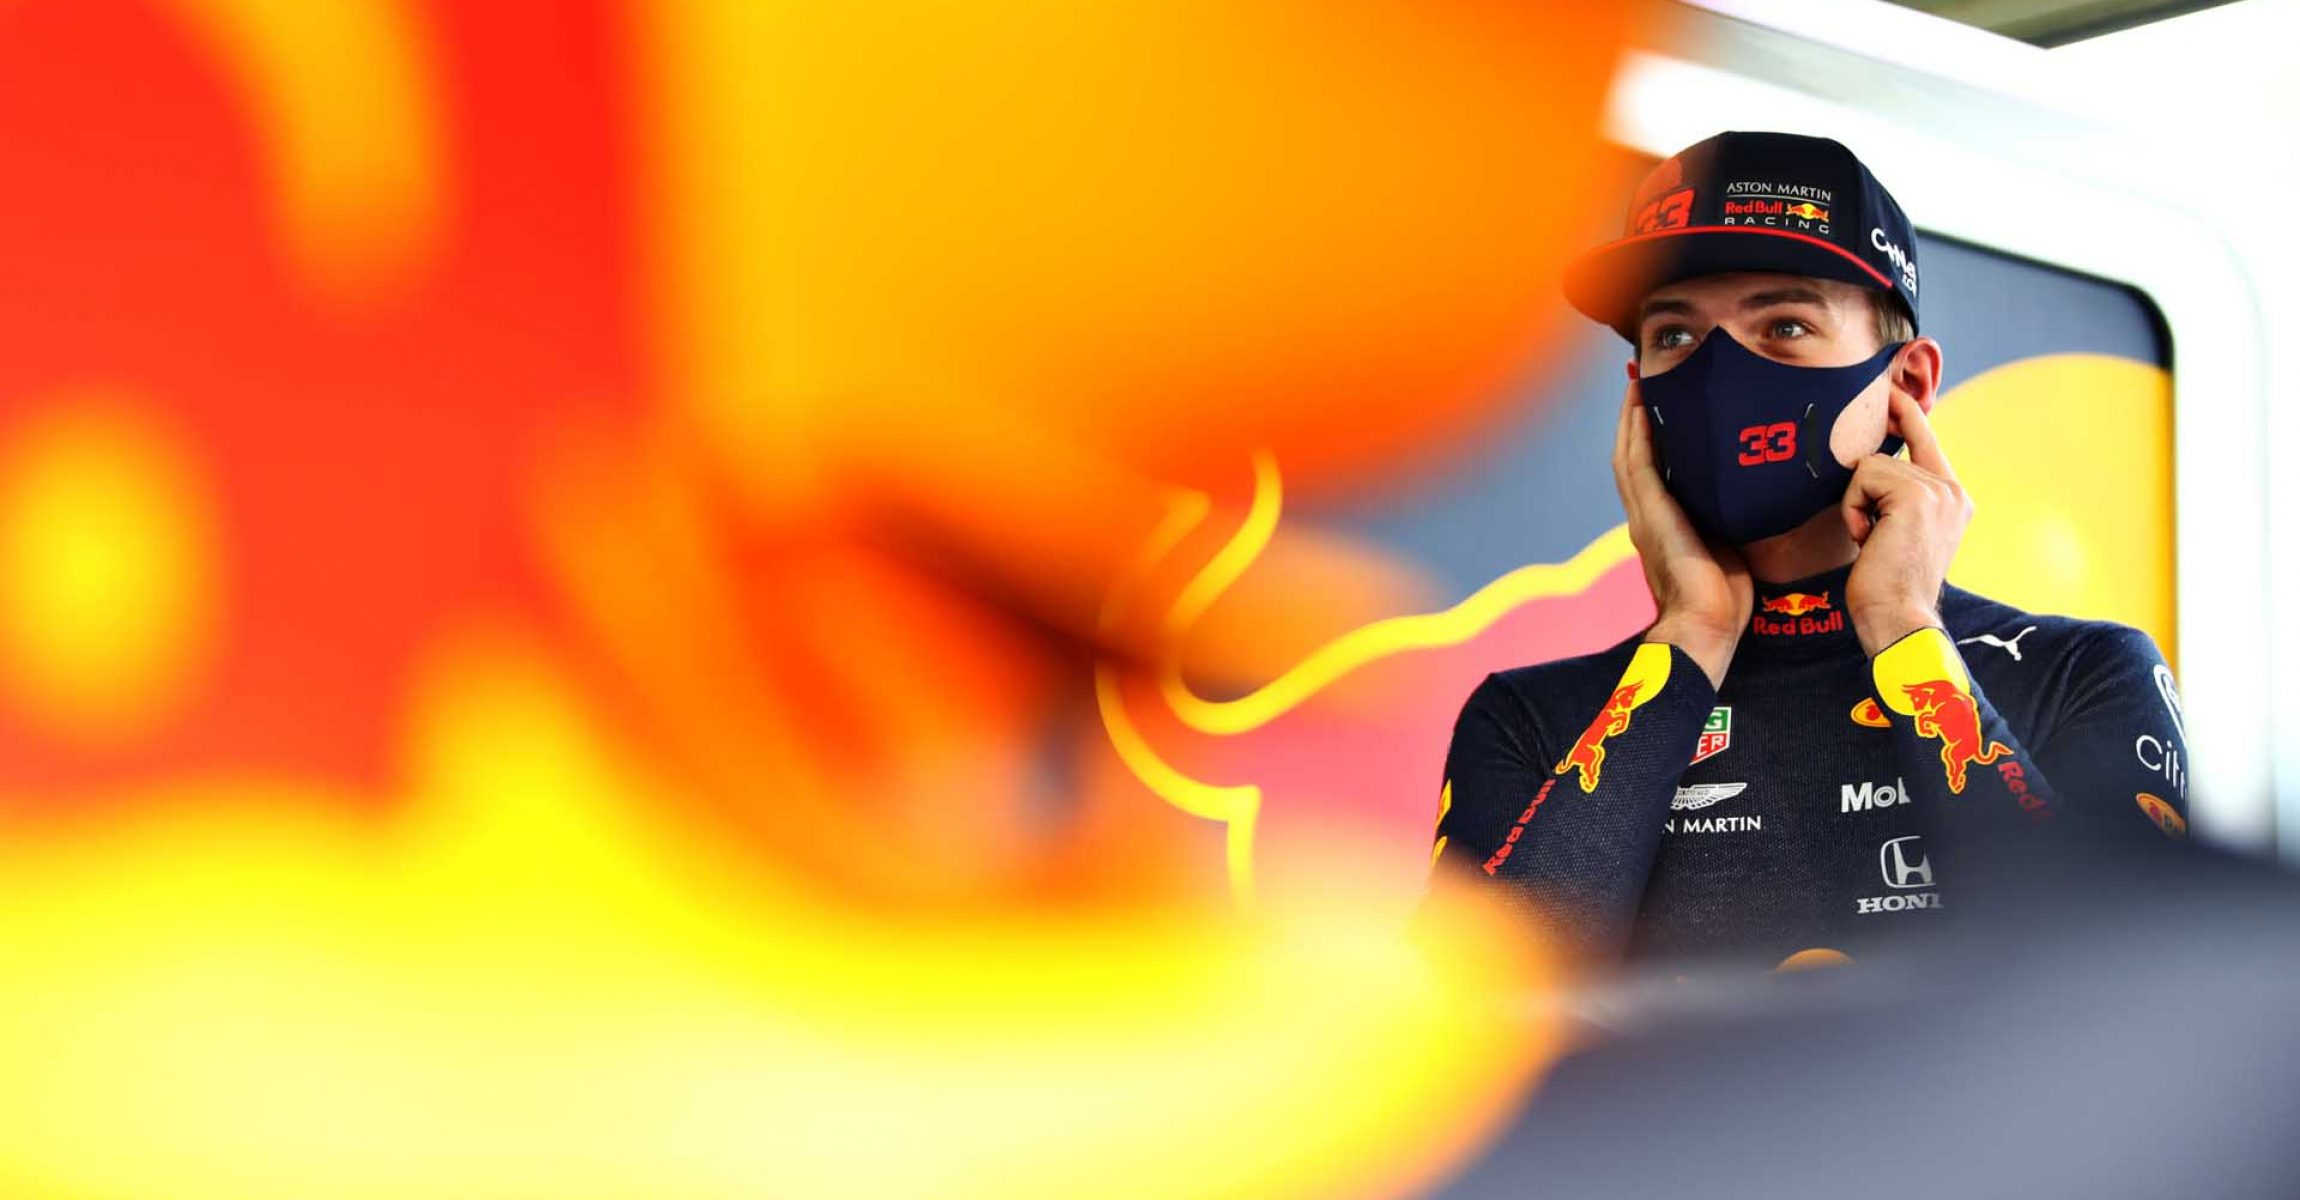 BAHRAIN, BAHRAIN - NOVEMBER 28: Max Verstappen of Netherlands and Red Bull Racing prepares to drive in the garage during final practice ahead of the F1 Grand Prix of Bahrain at Bahrain International Circuit on November 28, 2020 in Bahrain, Bahrain. (Photo by Mark Thompson/Getty Images)